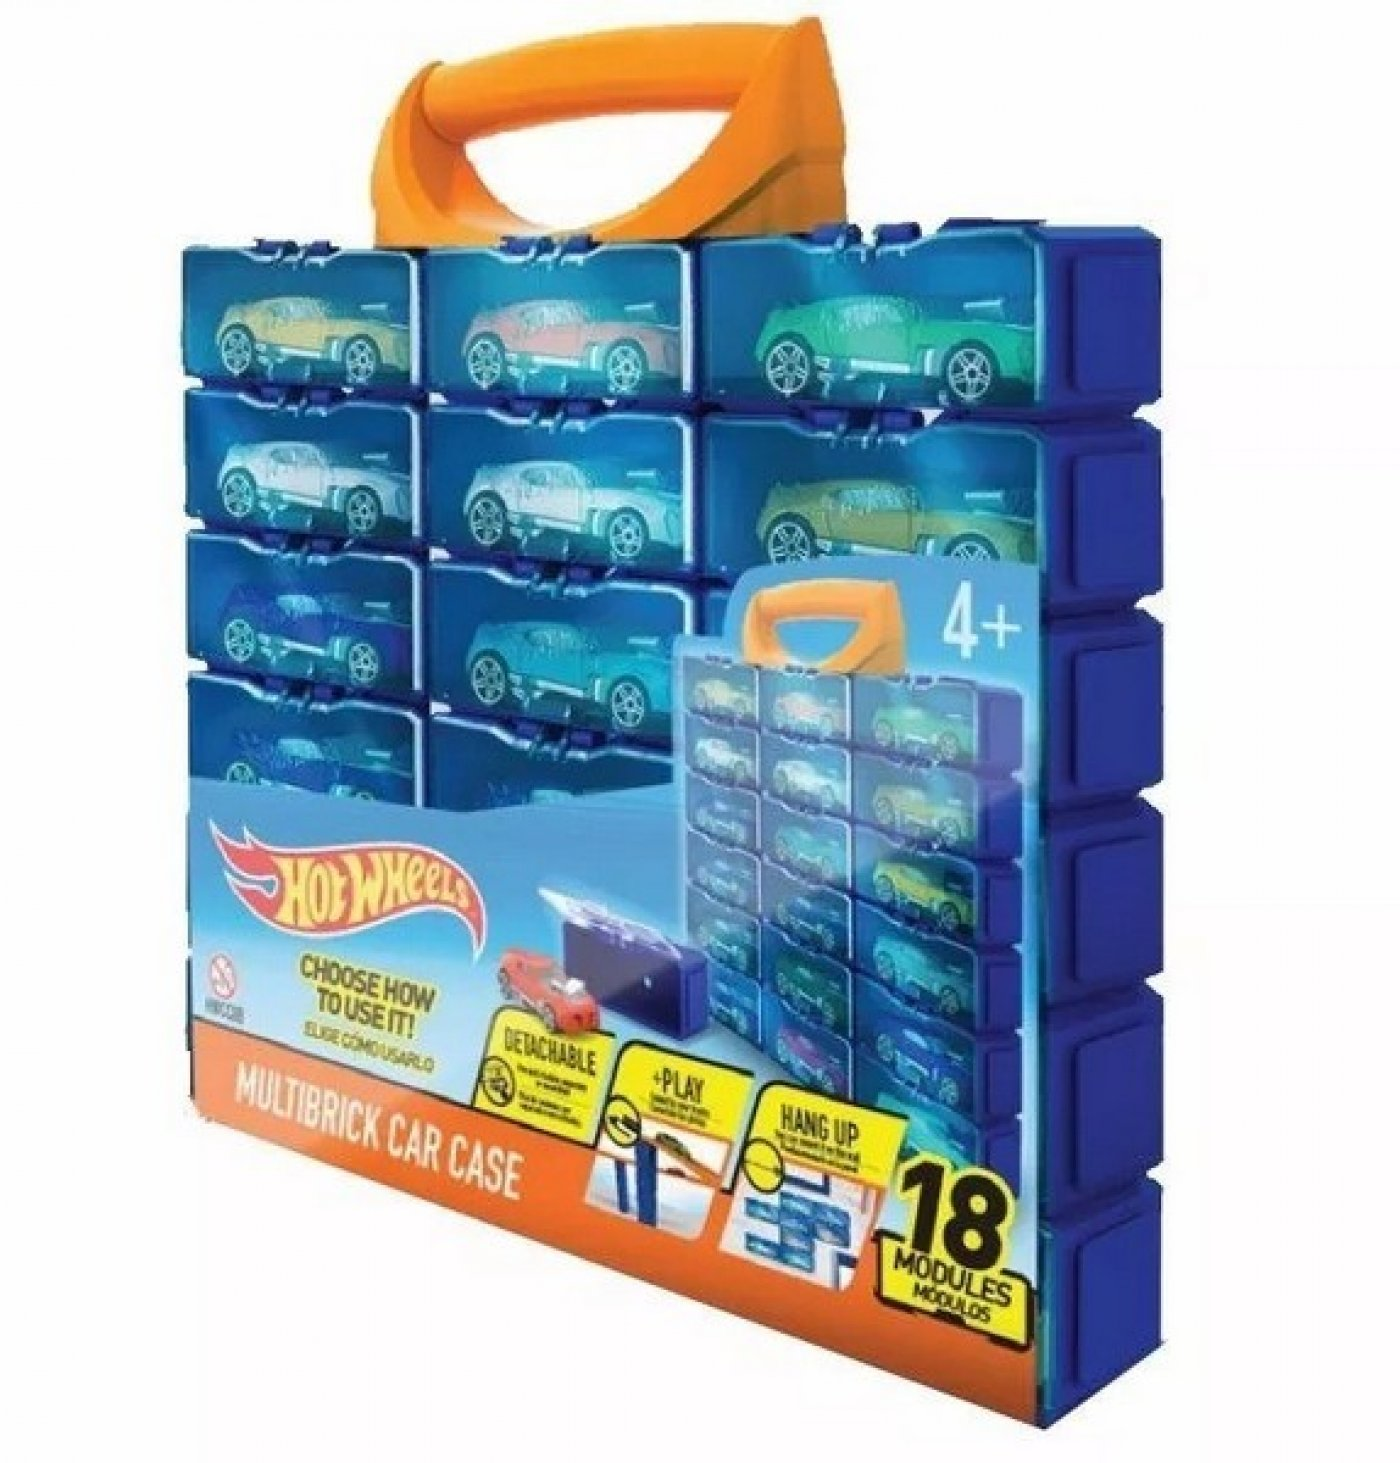 Hot Wheels Multibrick Car Case 18 módulos